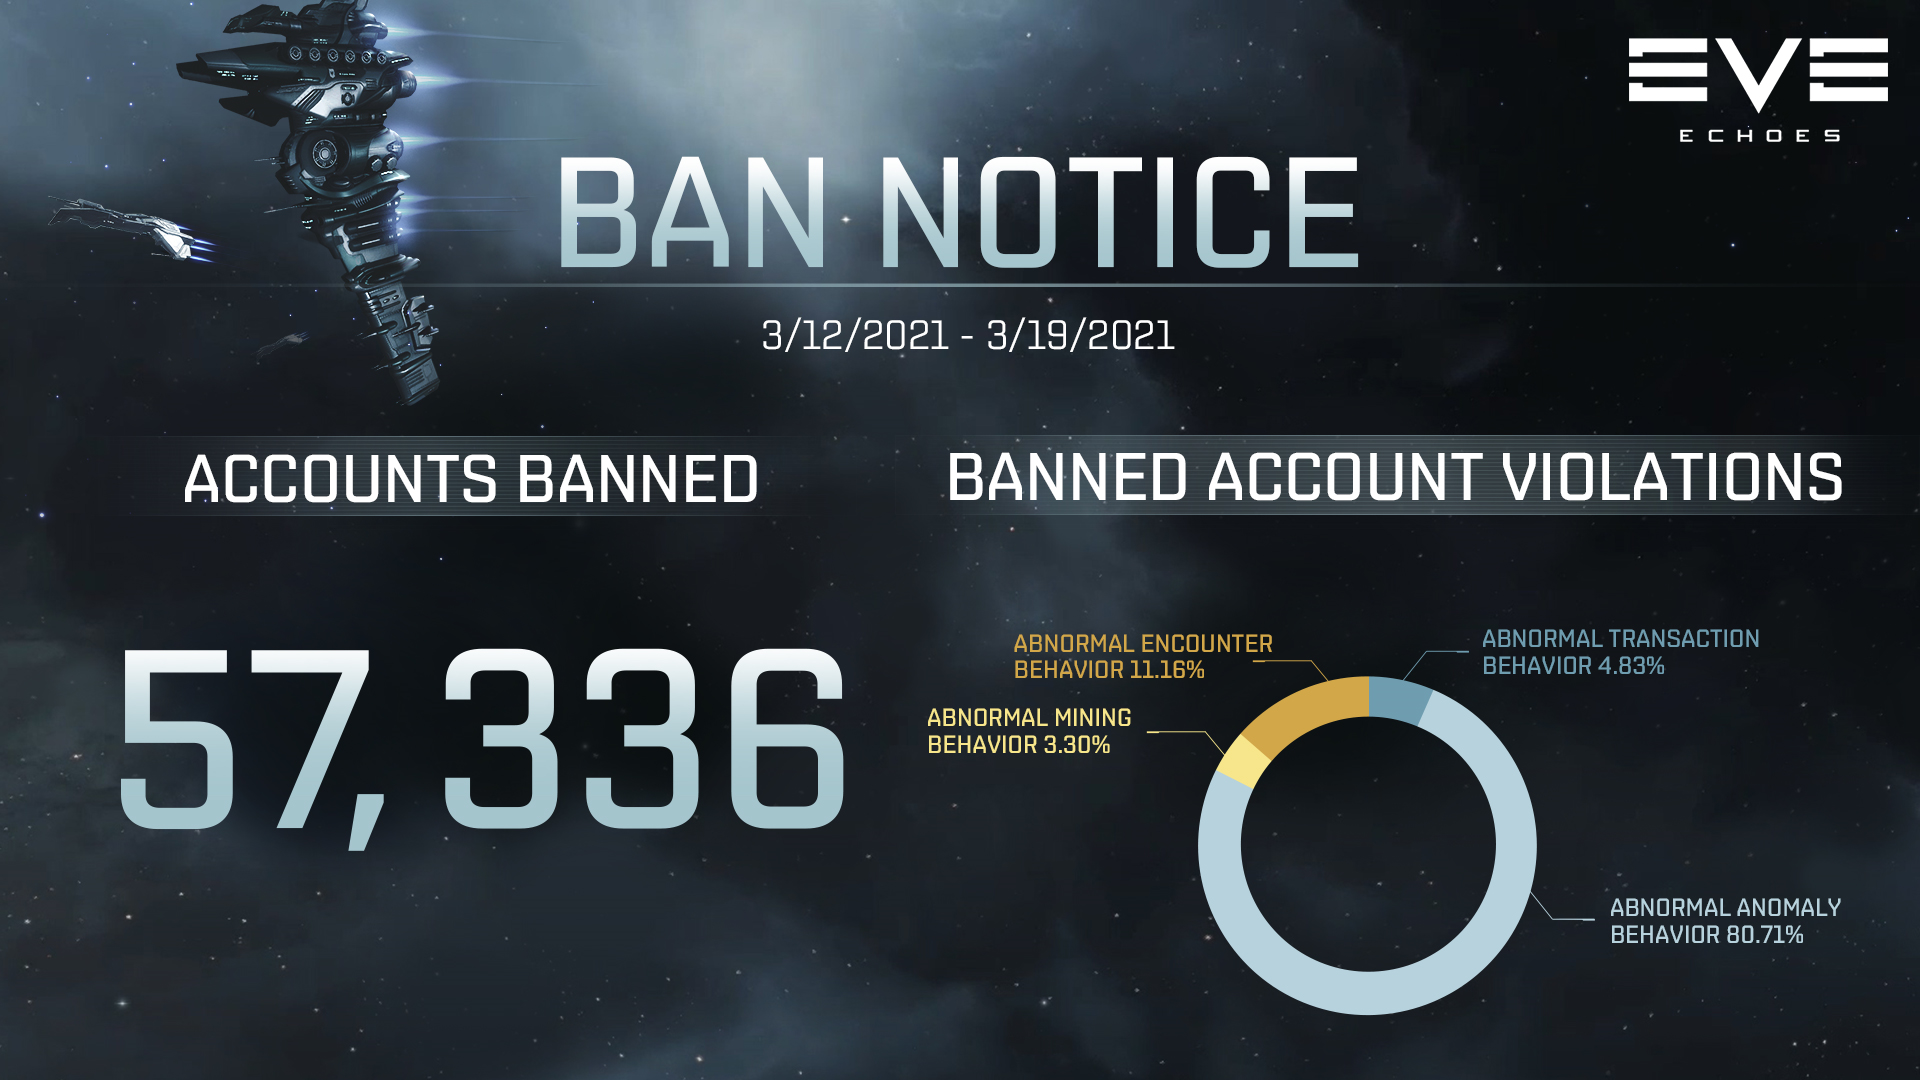 Ban Notice for 03/12-03/19